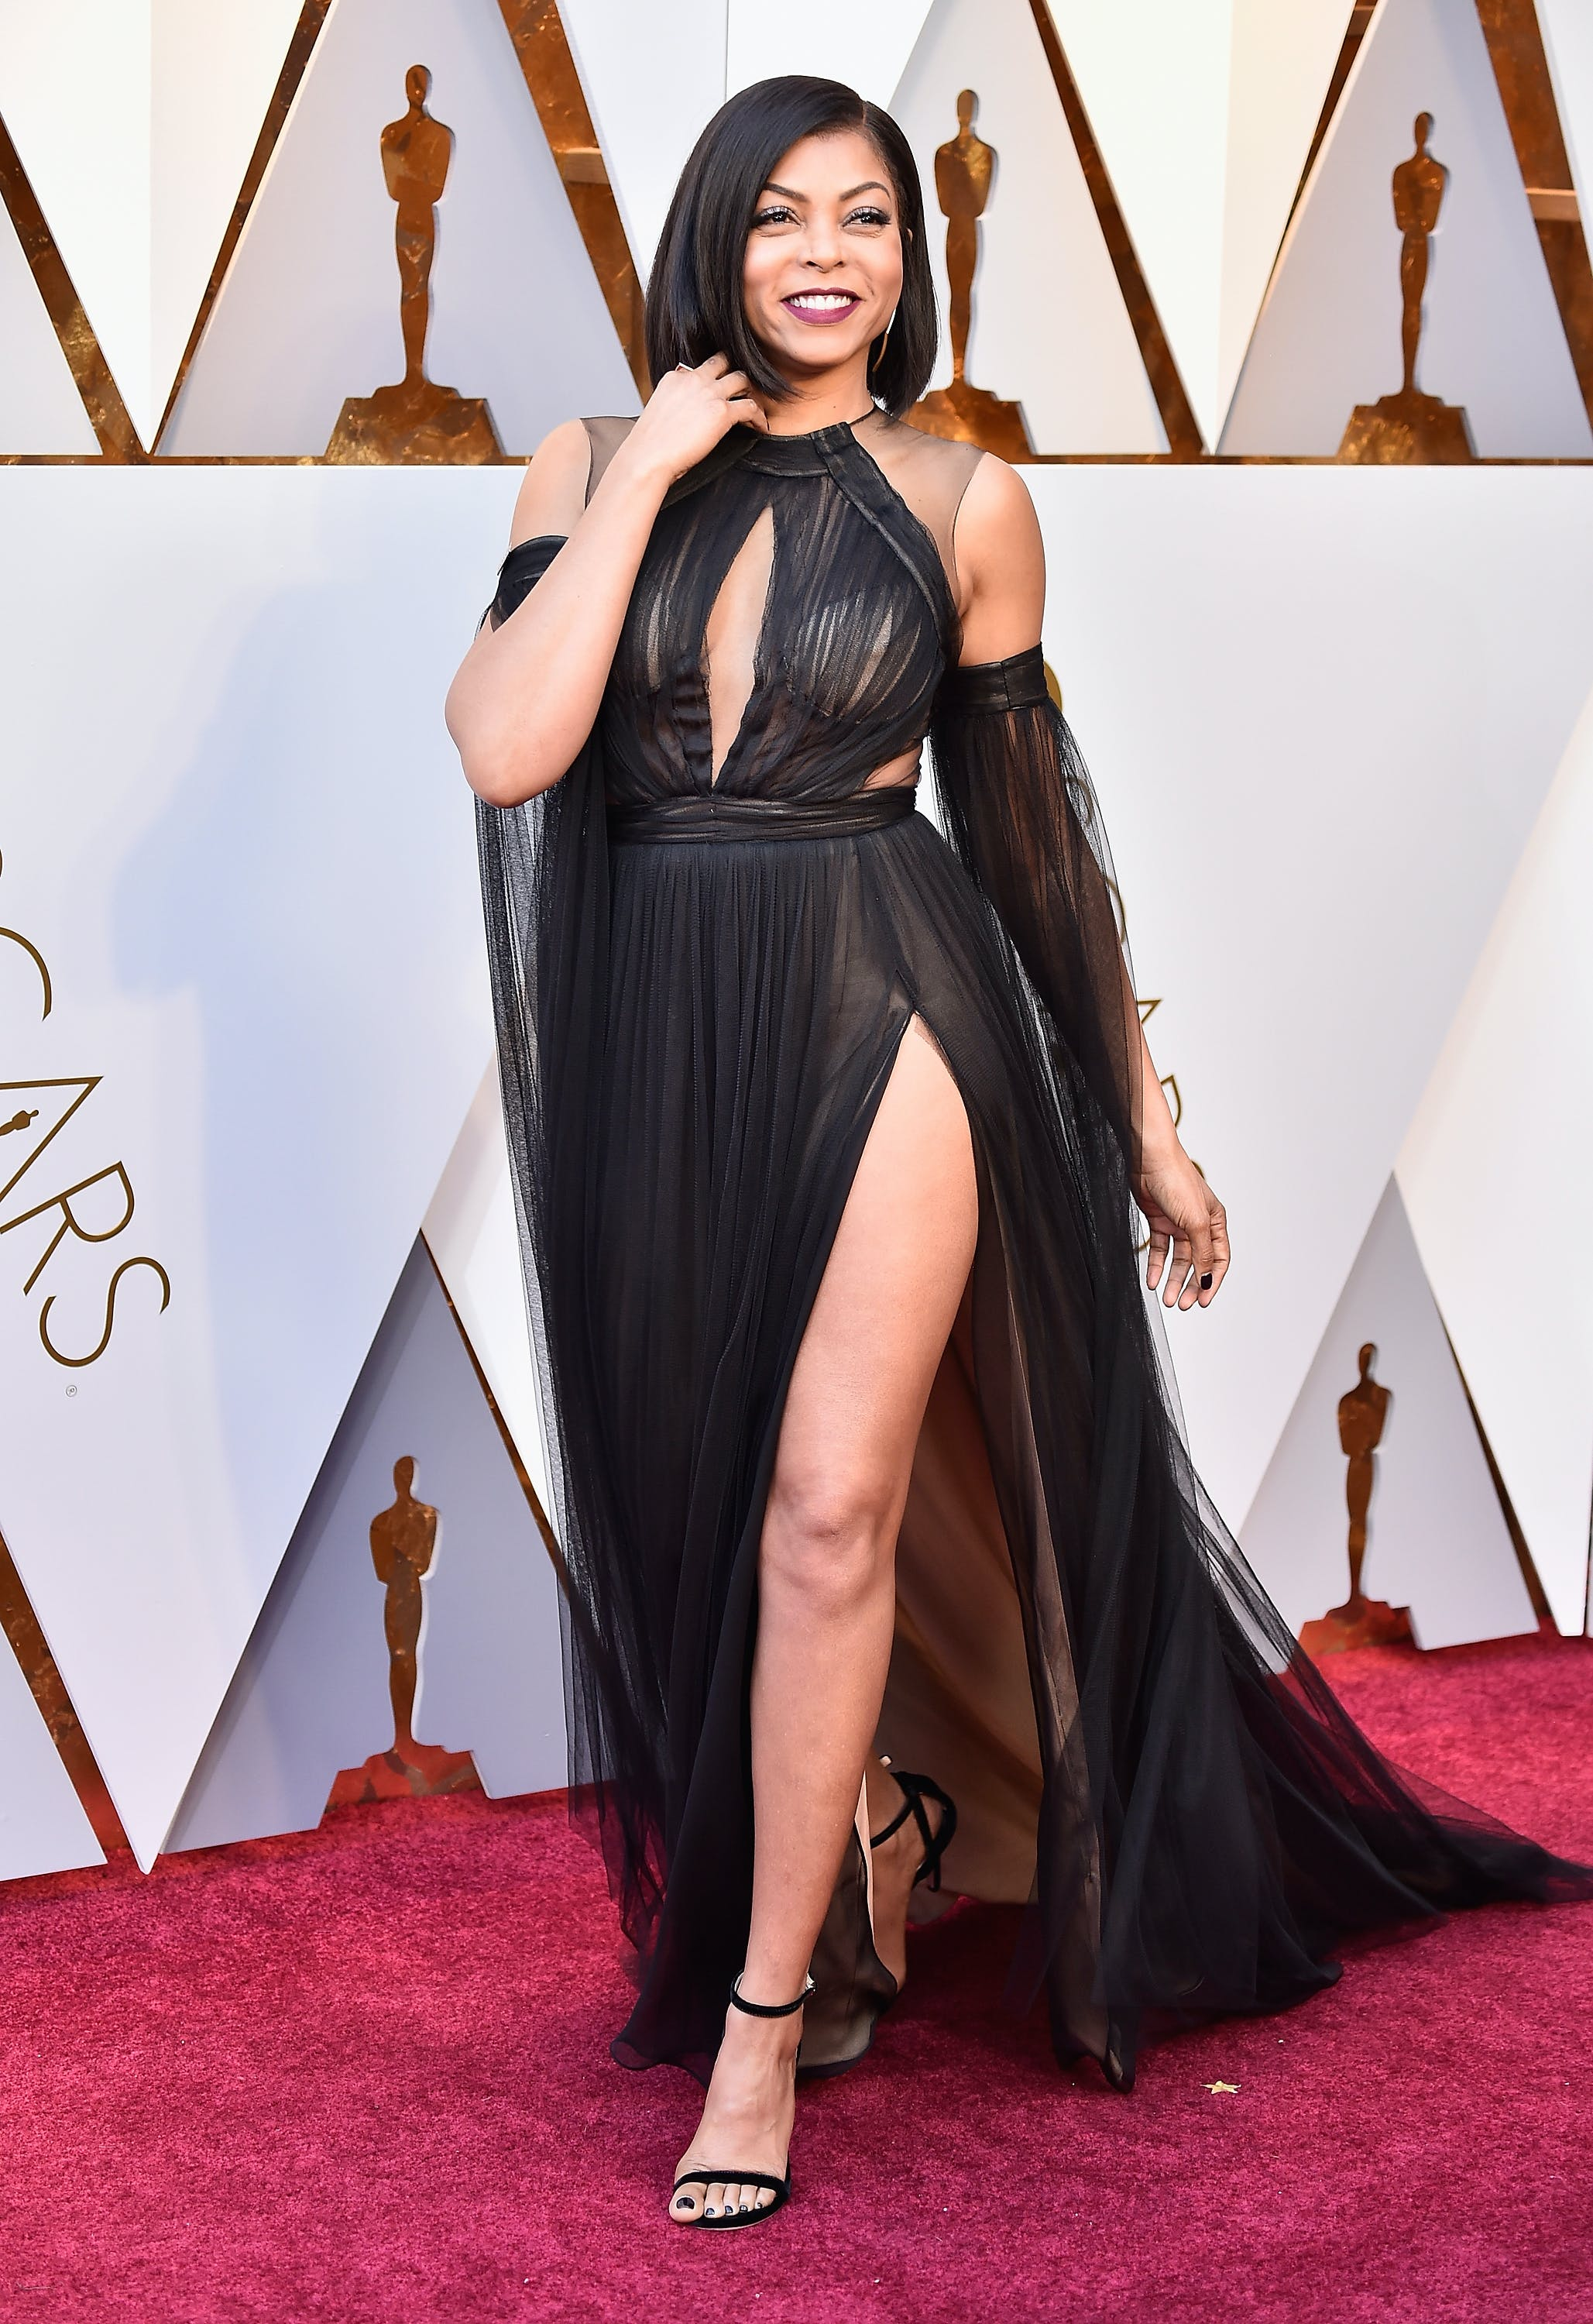 Taraji P Henson on the 2018 Oscars red carpet